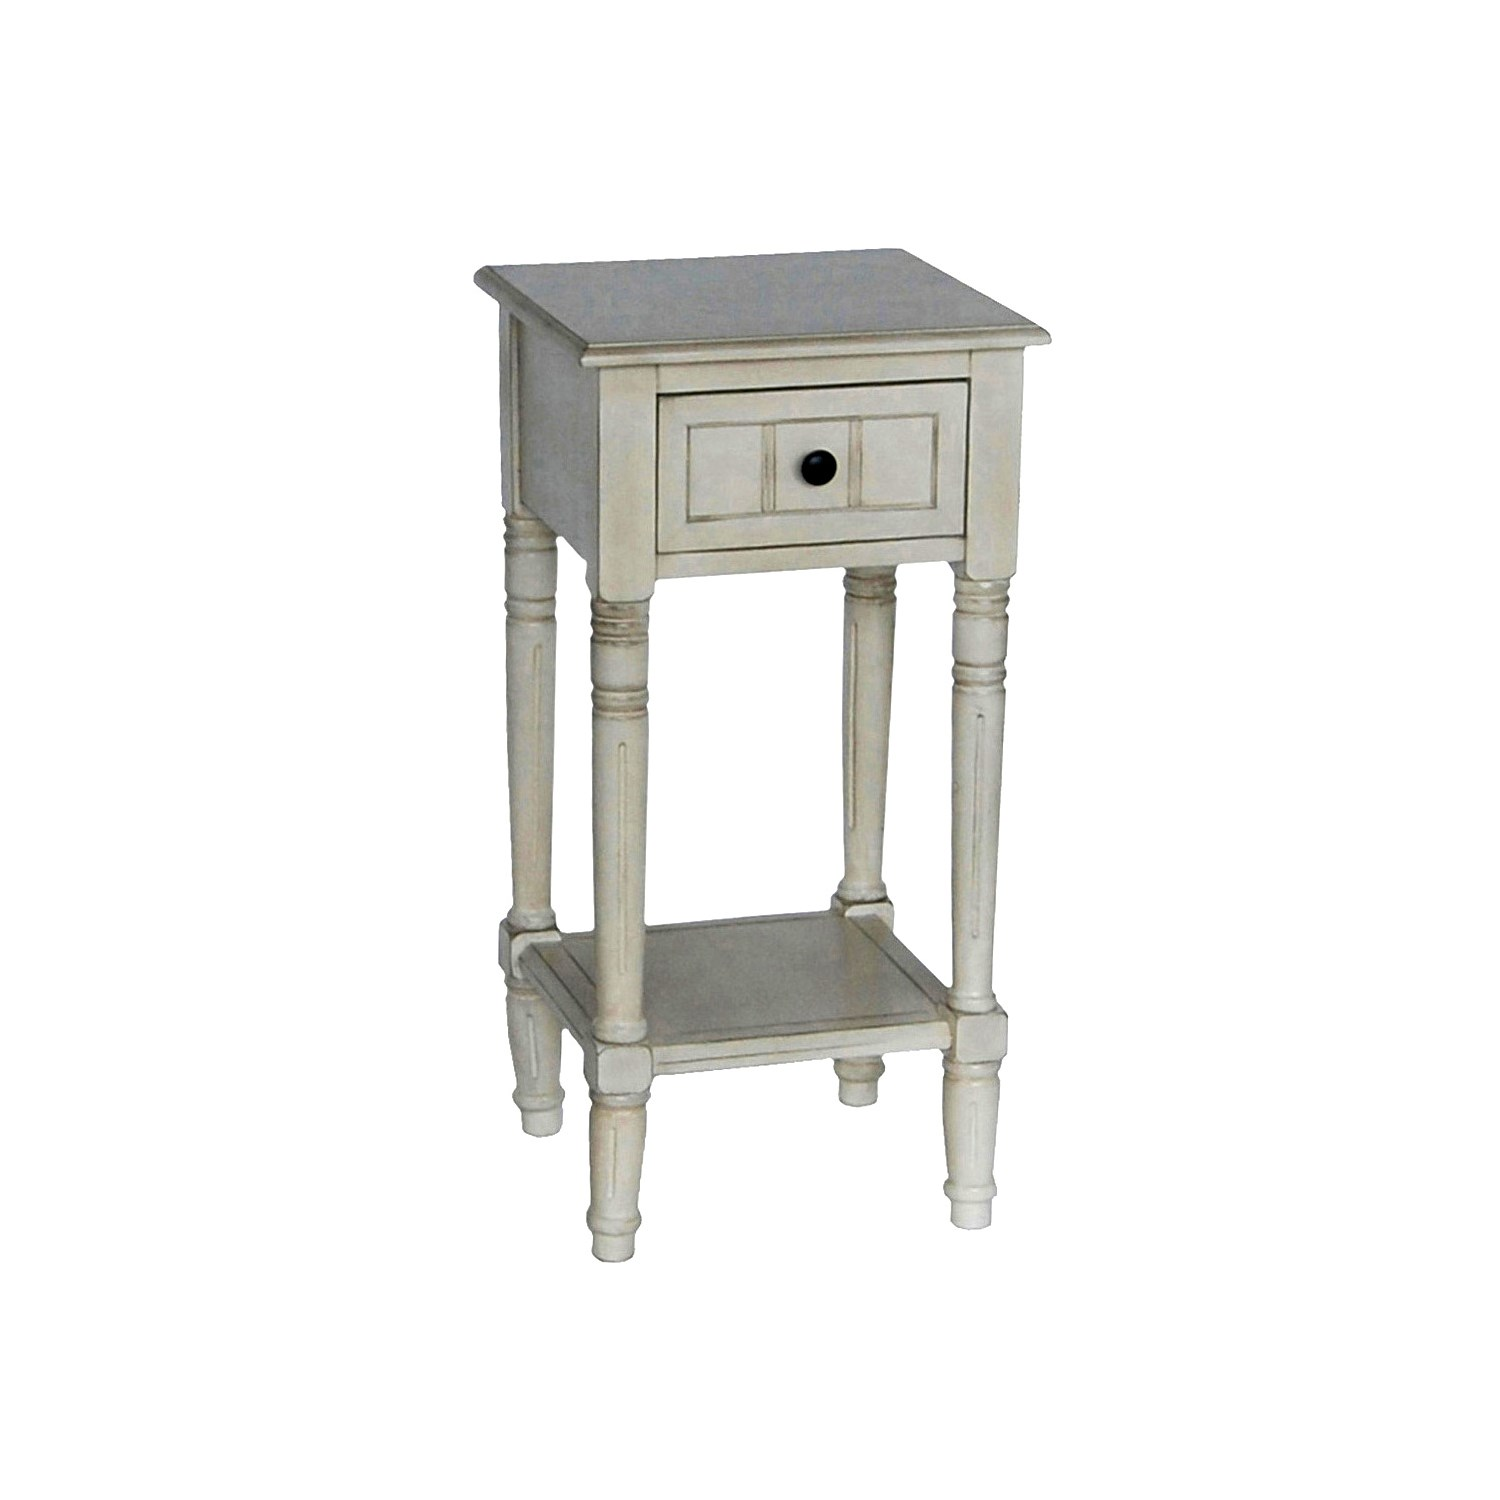 dining room white accent table tables living modest for hunt antique distressed the simple nightstand ashley sleeper sofa kitchen mats grey patterned armchair two nesting large